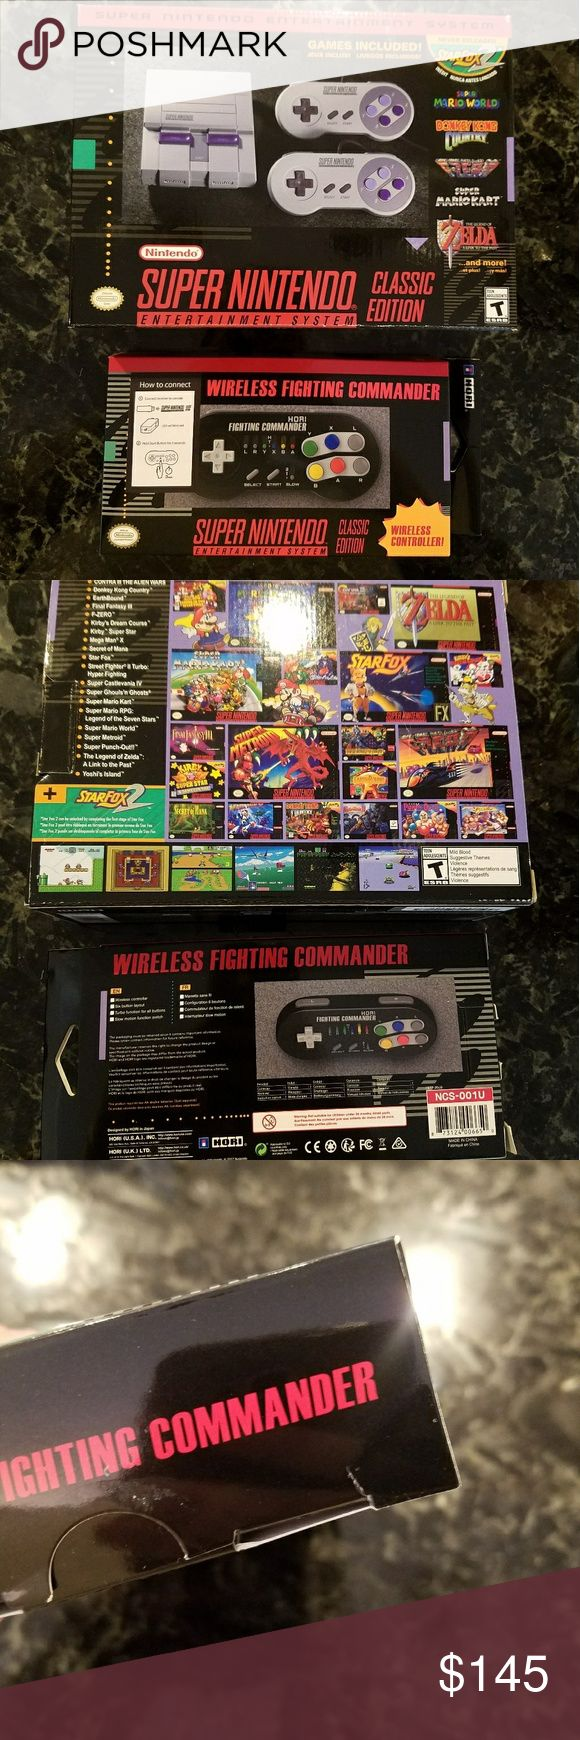 BNIB Super NES Classic w Wireless Controller Brand new! In box! Never used! Super NES Classic Edition. SNES Classic box contains the console as well as 2 wired controllers.   I am also including 1 wireless controller from HDRI. This is the one that comes bundled with the SNES Classic if you purchase it through GameStop. Wireless controller box came to me from Game Stop w/ a small tear in the side of the box (pictured).   The Super NES Classic Edition system looks and feels just like the…